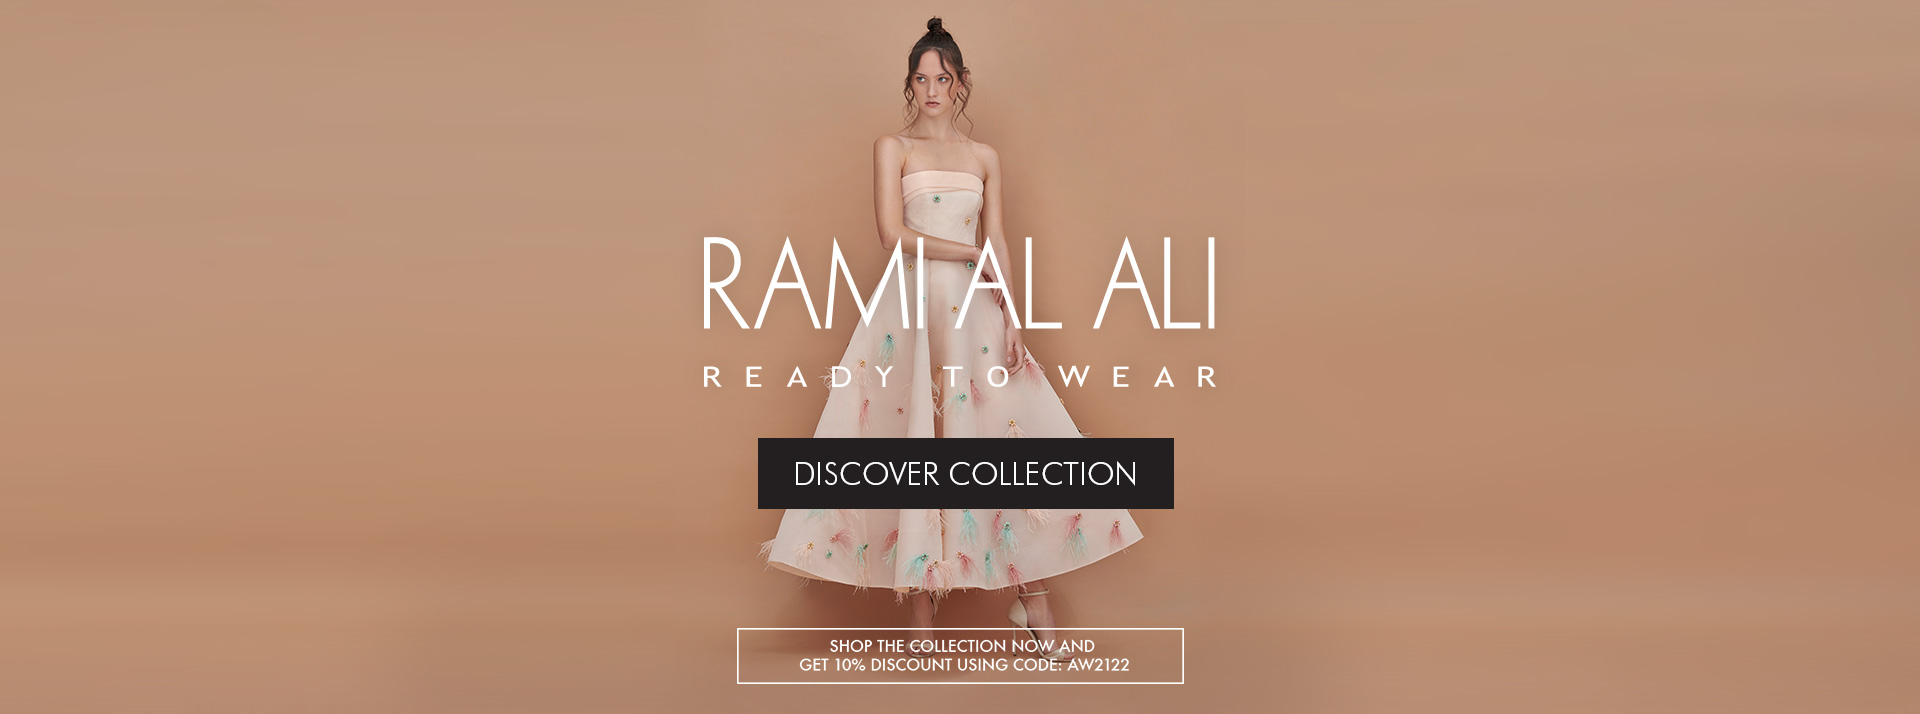 10% offer on ready to wear